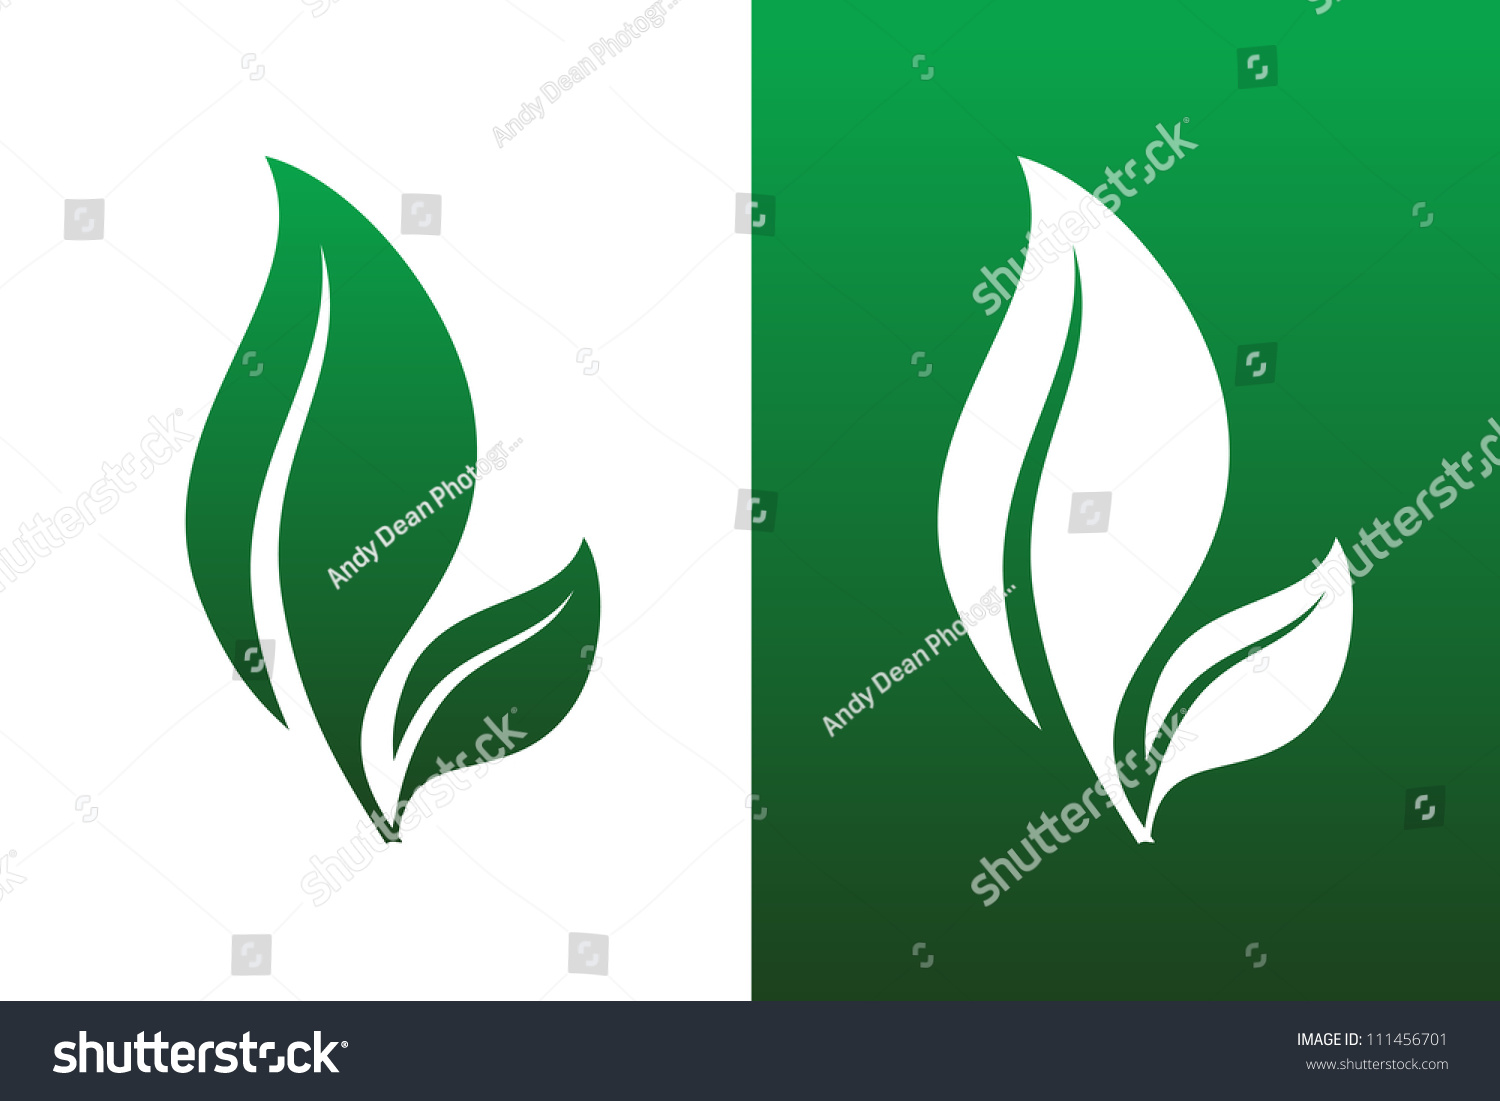 Leaf Pair Icon Vector Illustrations on Both Solid and Reversed ...